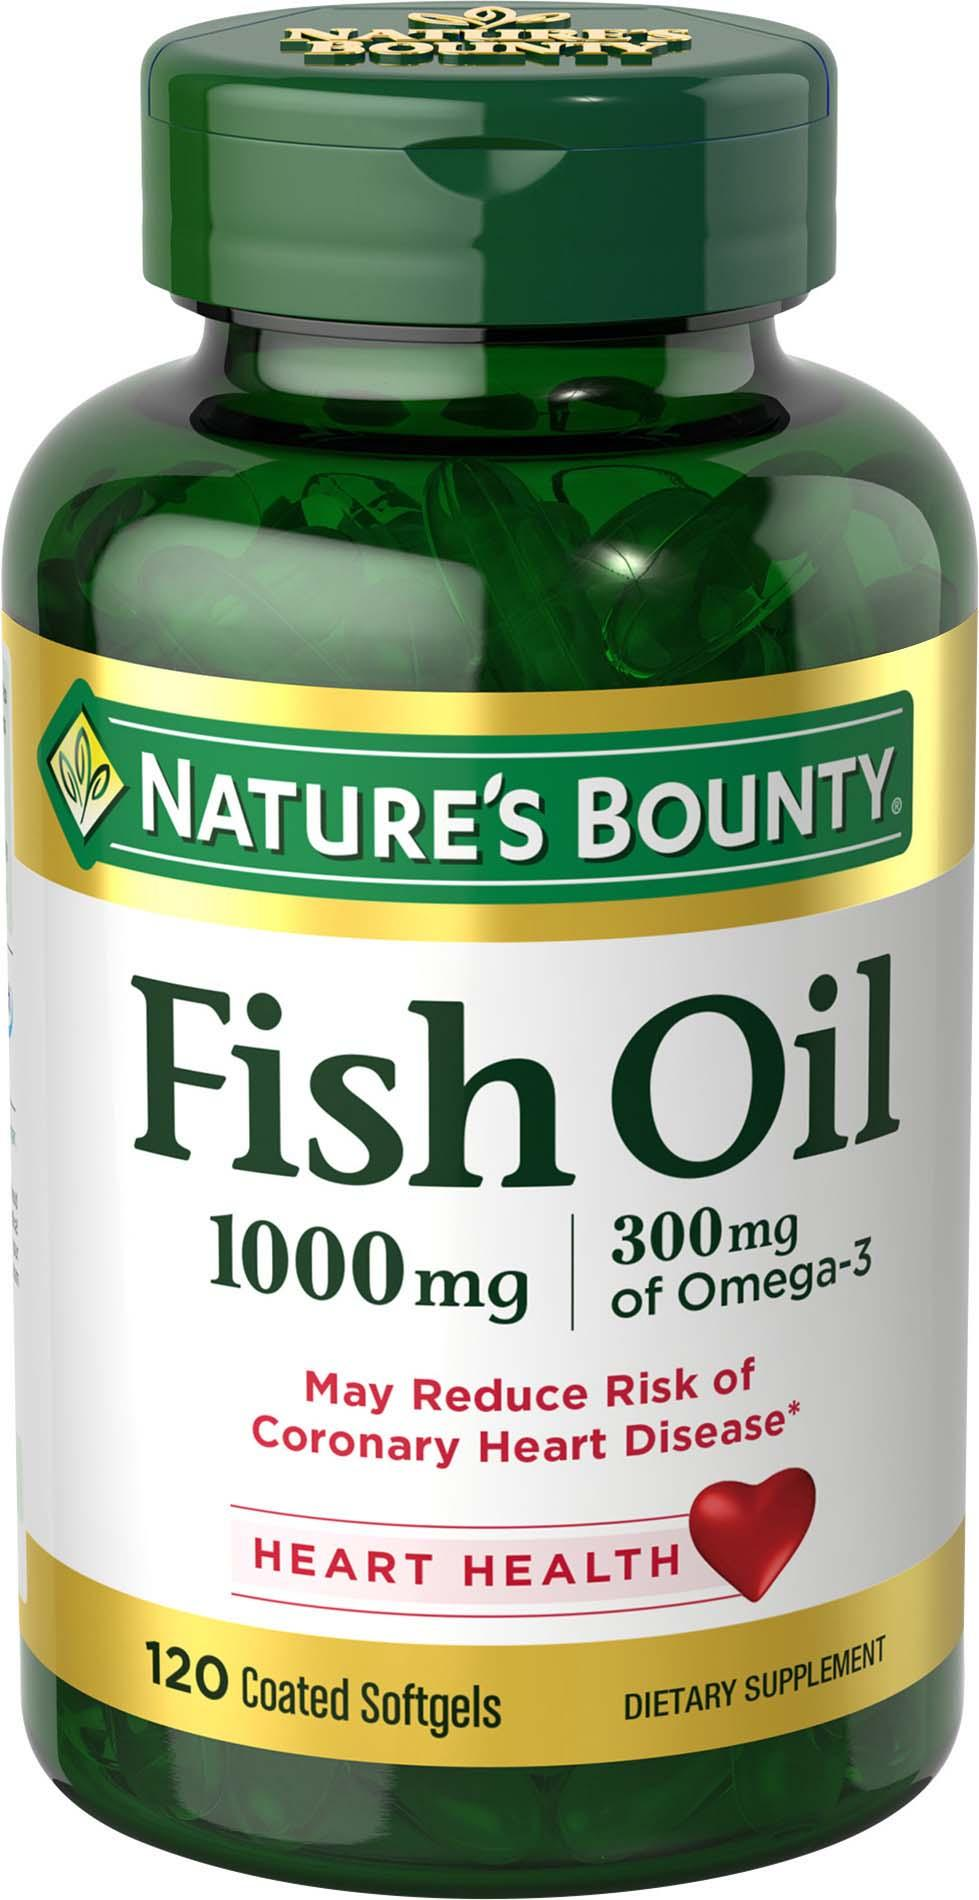 Nature 39 s bounty fish oil 1000 mg omega 3 for What is omega 3 fish oil good for